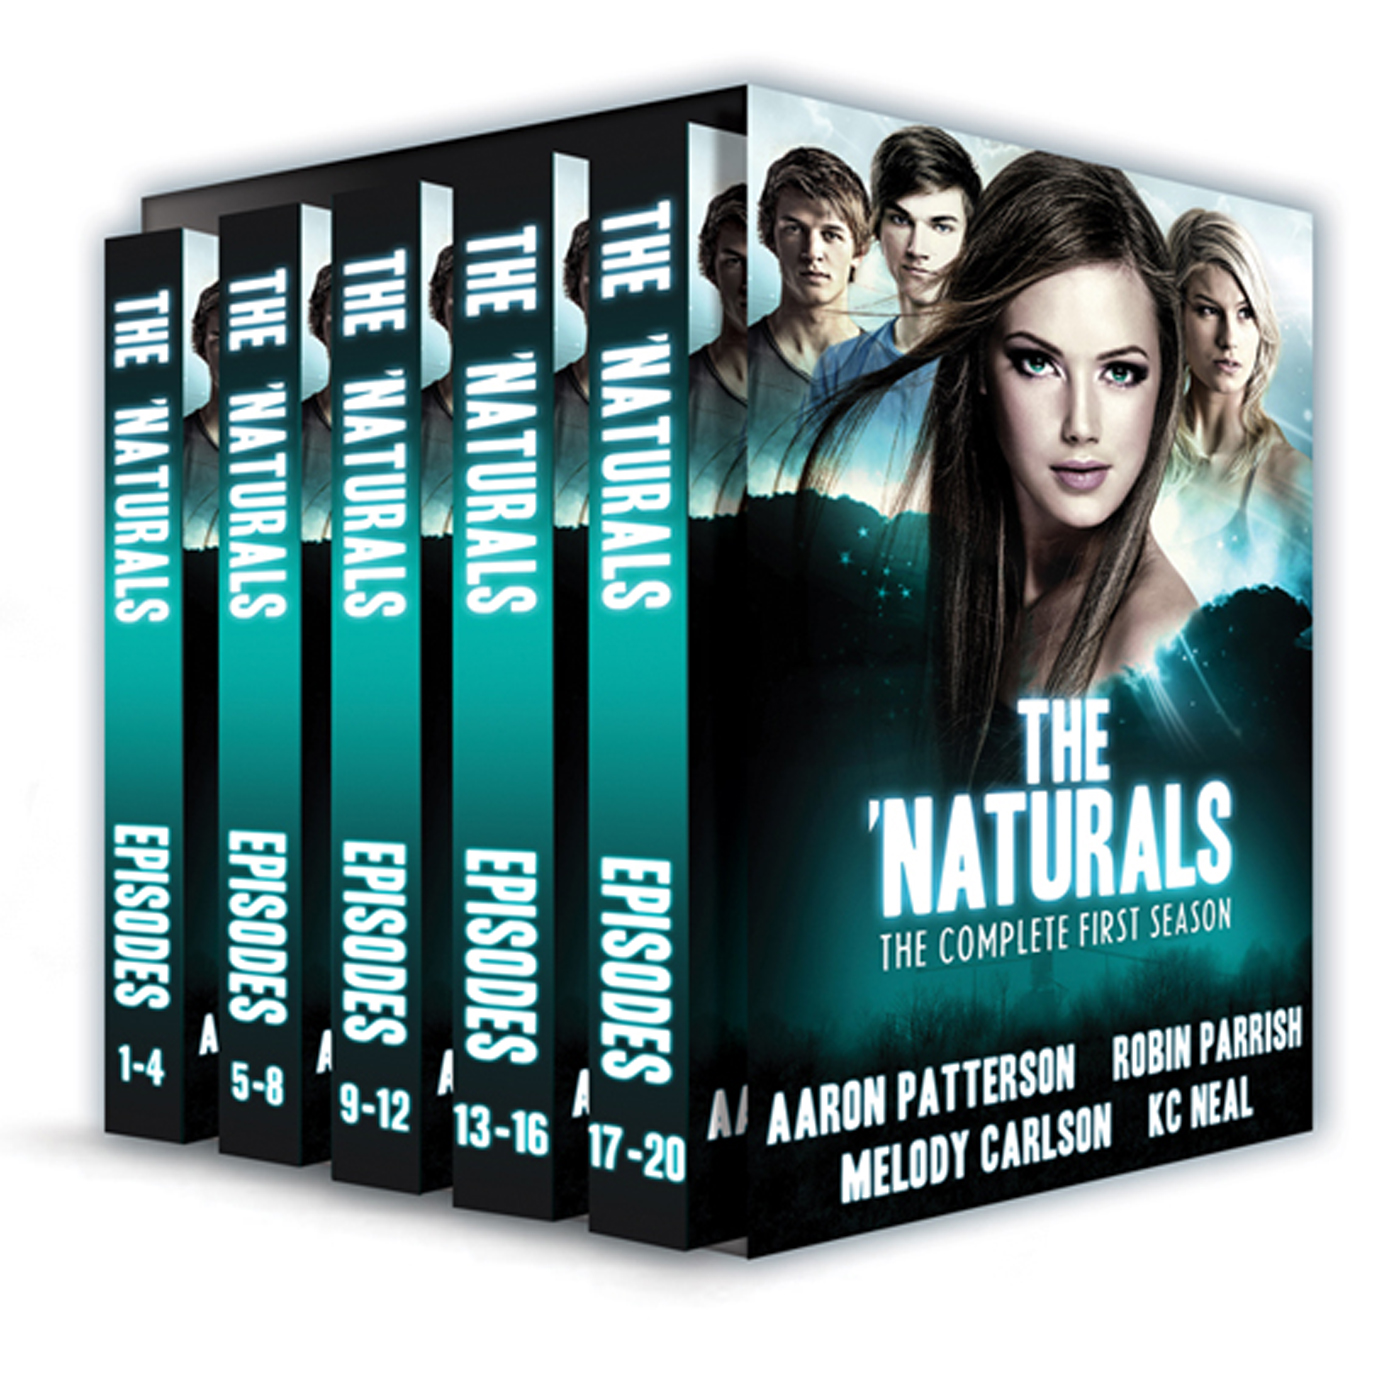 Melody Carlson, Robin Parrish & K.C. Neal  Aaron Patterson - The 'Naturals: Awakening (for fans of Veronica Roth, James Dashner, Brandon Sanderson)